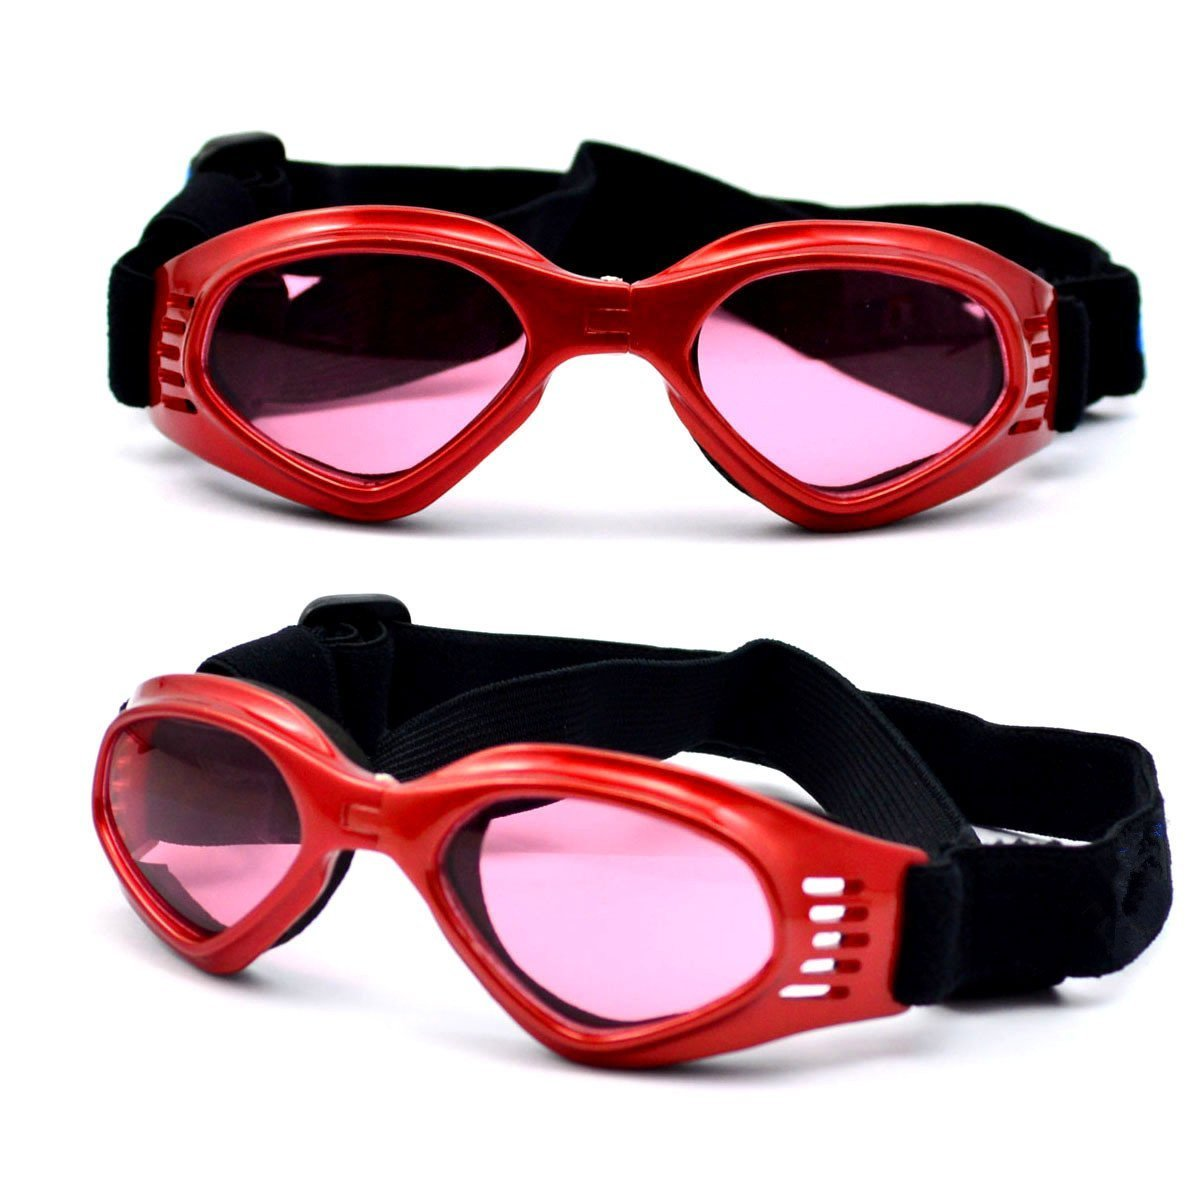 OxyPlay Dog Goggles Windproof Adorable Doggie Puppy Sunglasses for Small Dogs of Surfing, Motorcycle, Photograph … (Red) by OxyPlay (Image #2)